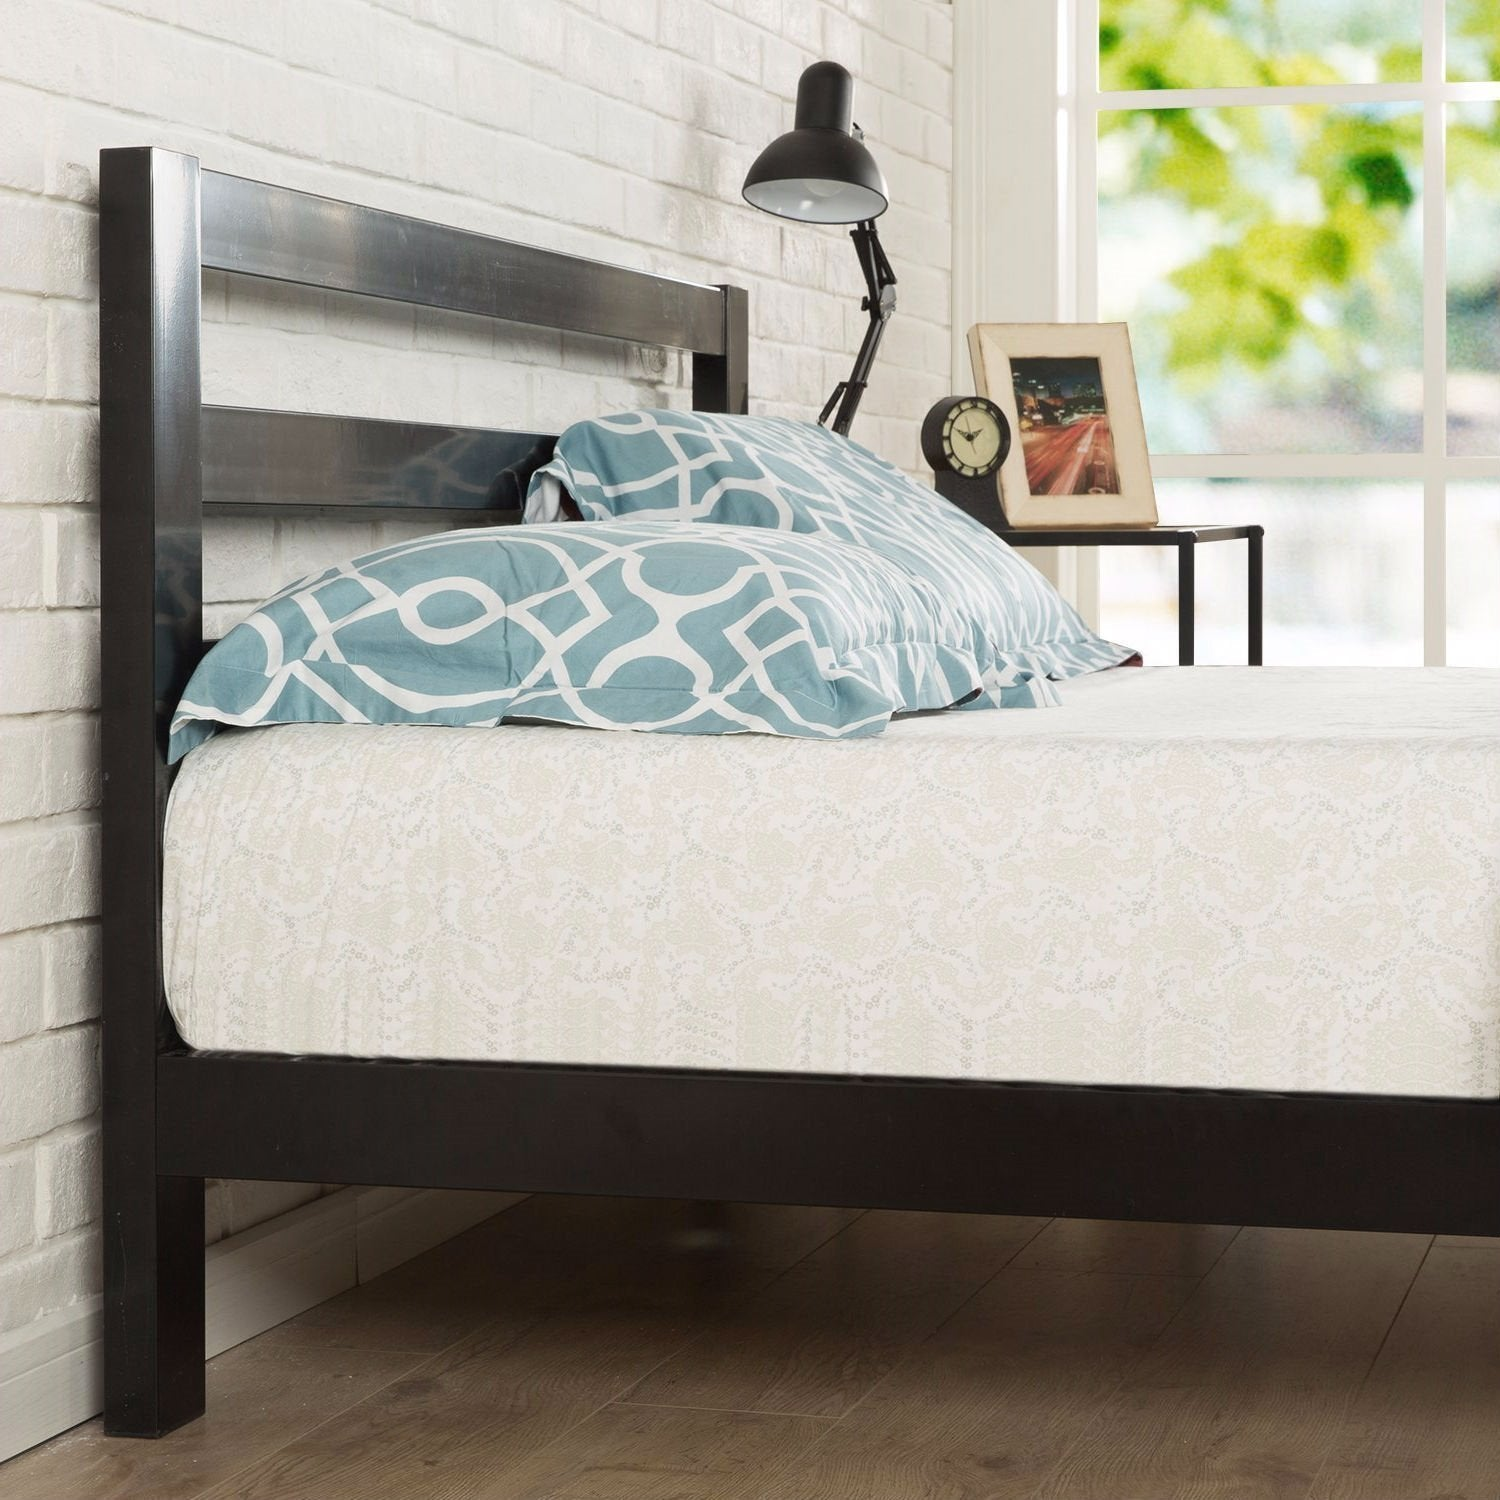 Vienna Platform Bed Full size.